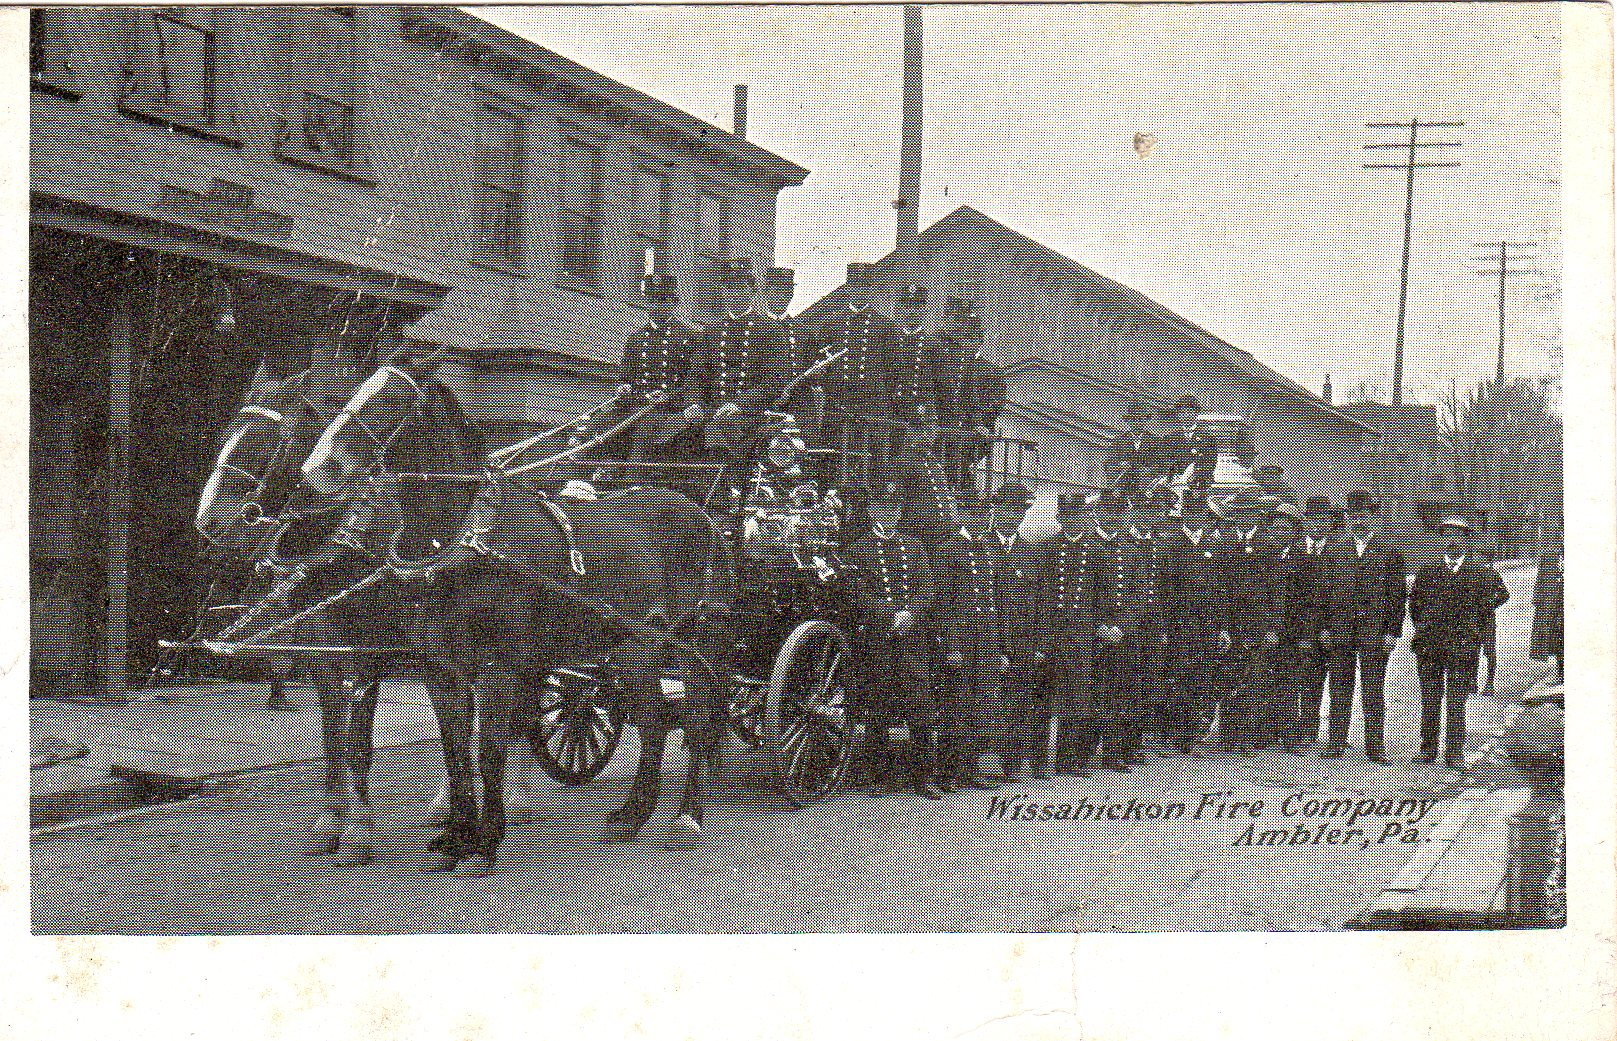 Post Card Collection (E Simon)_2682_12_Wissahickon Fire Company, Ambler, Pa_1908